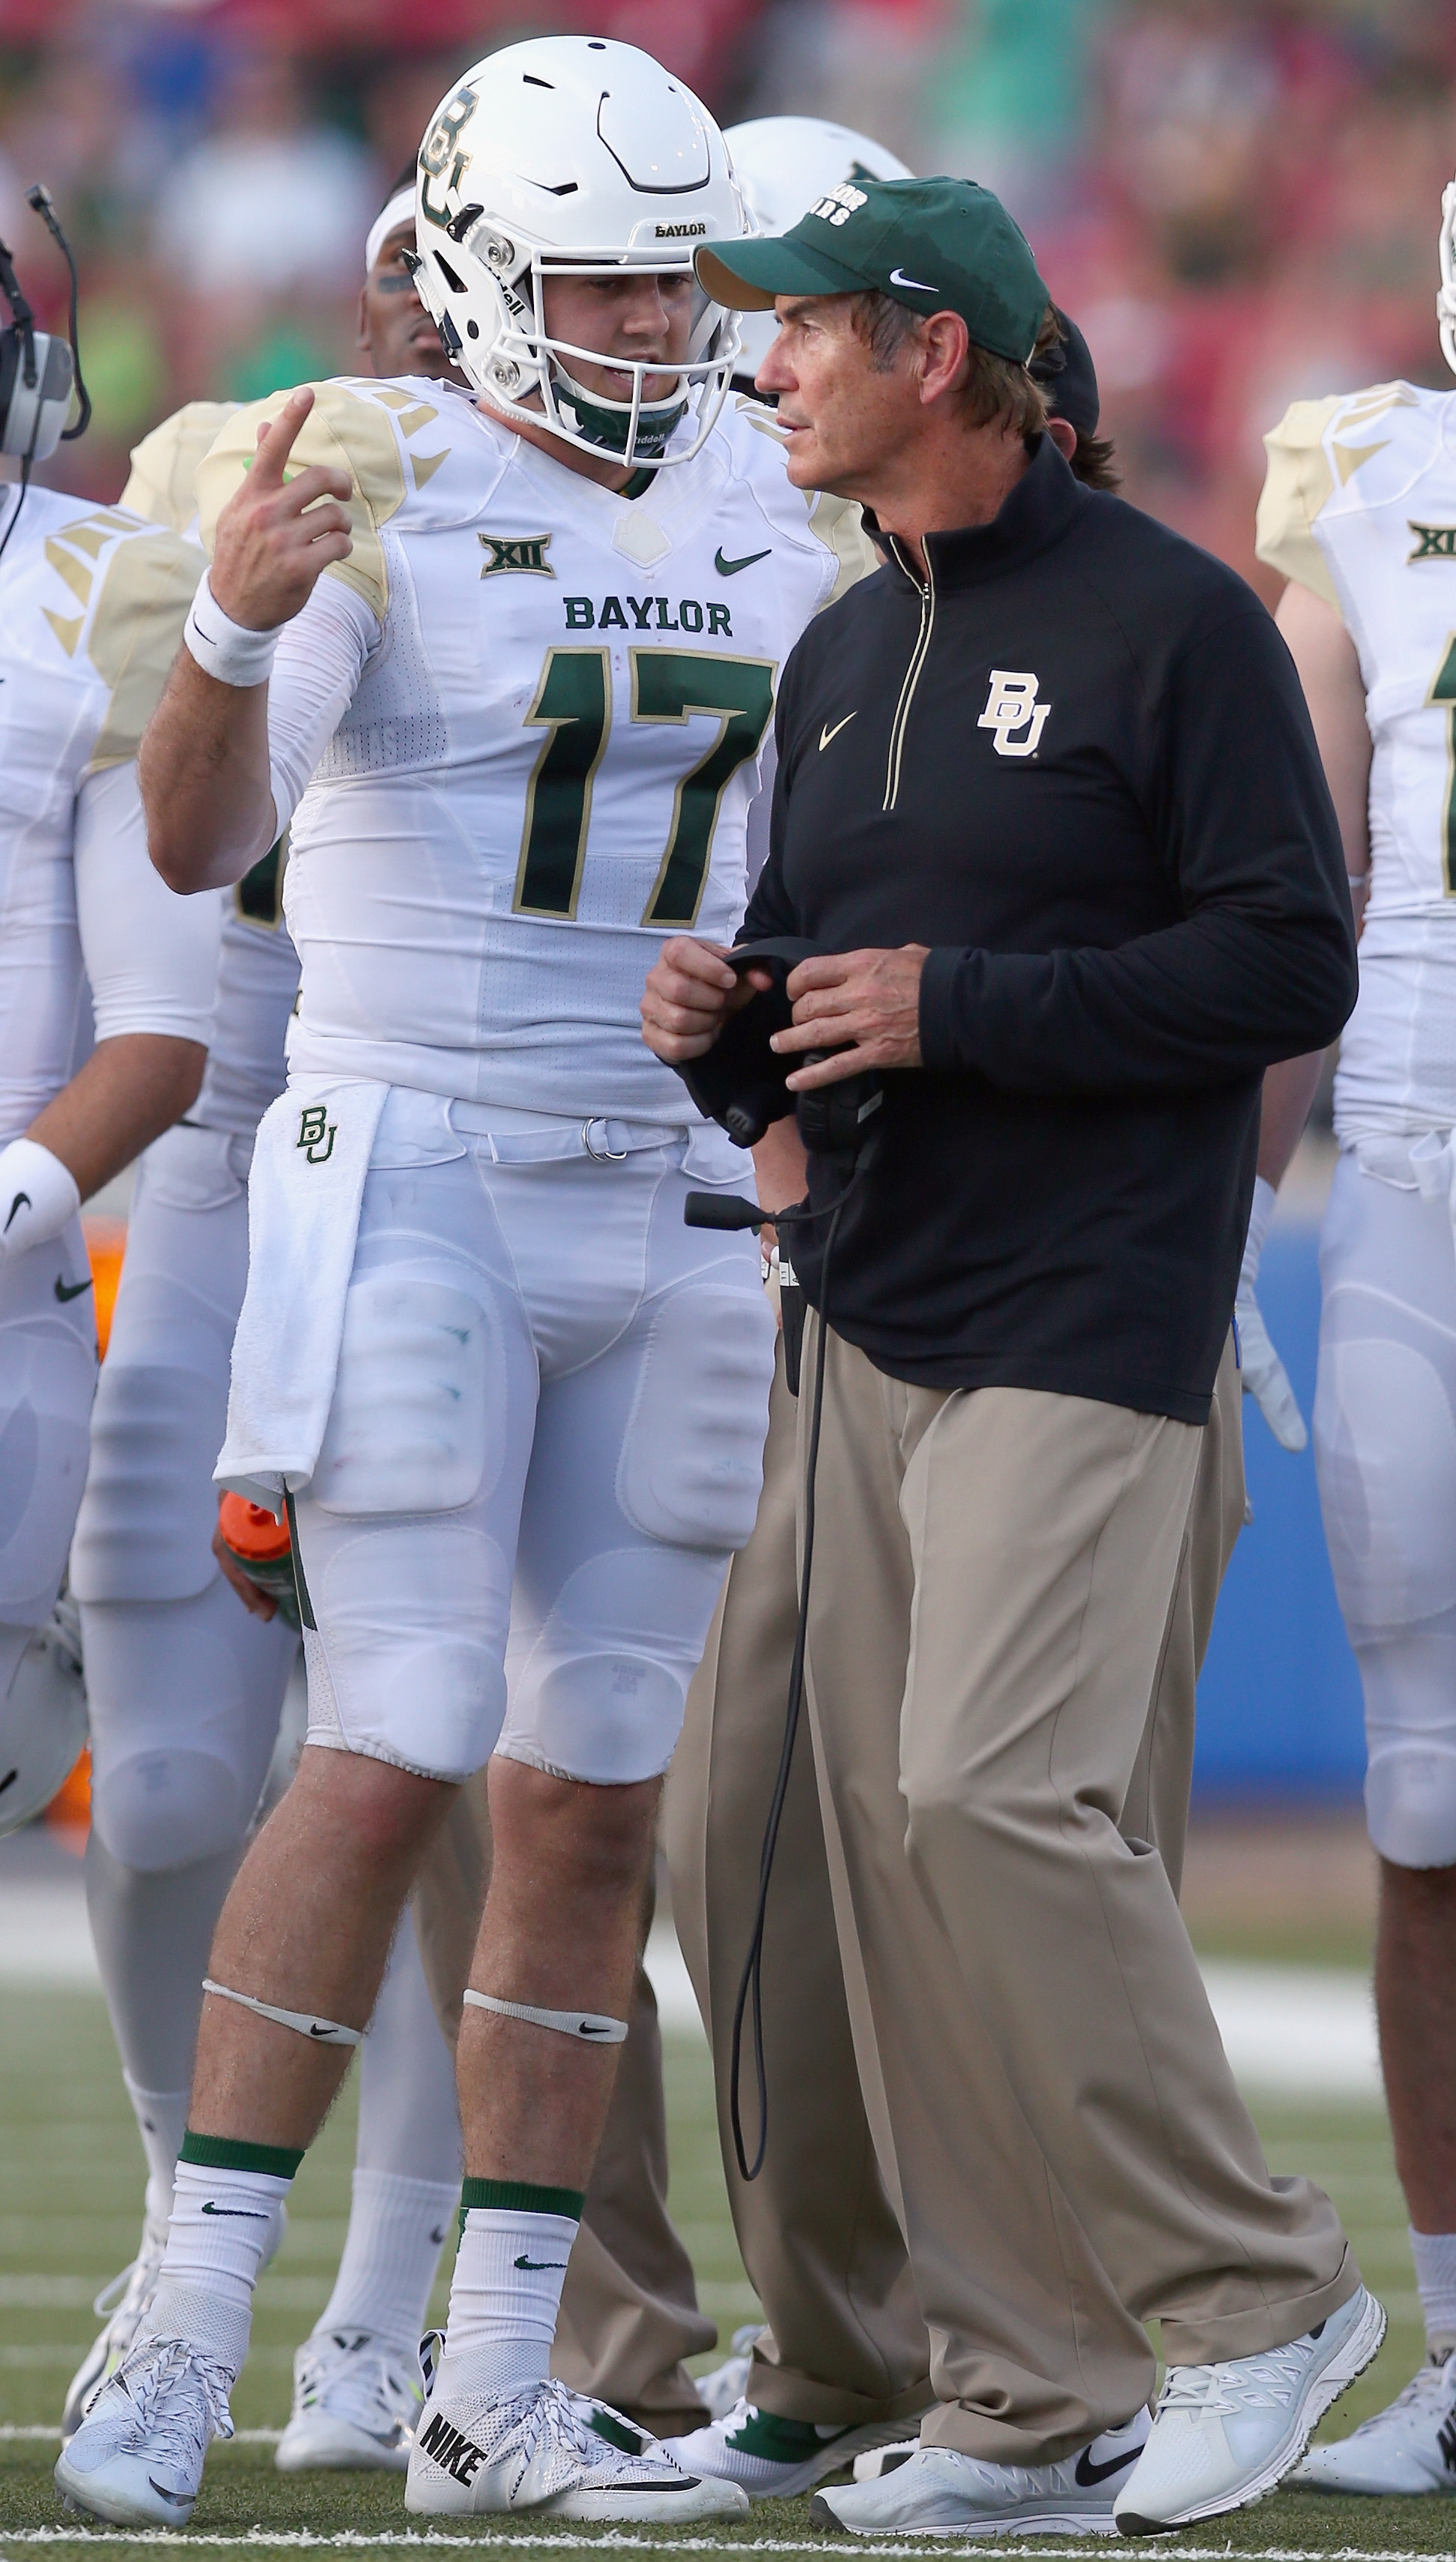 Baylor coach Art Briles no longer has a job as a result of how the school handled a sexual-assault epidemic.